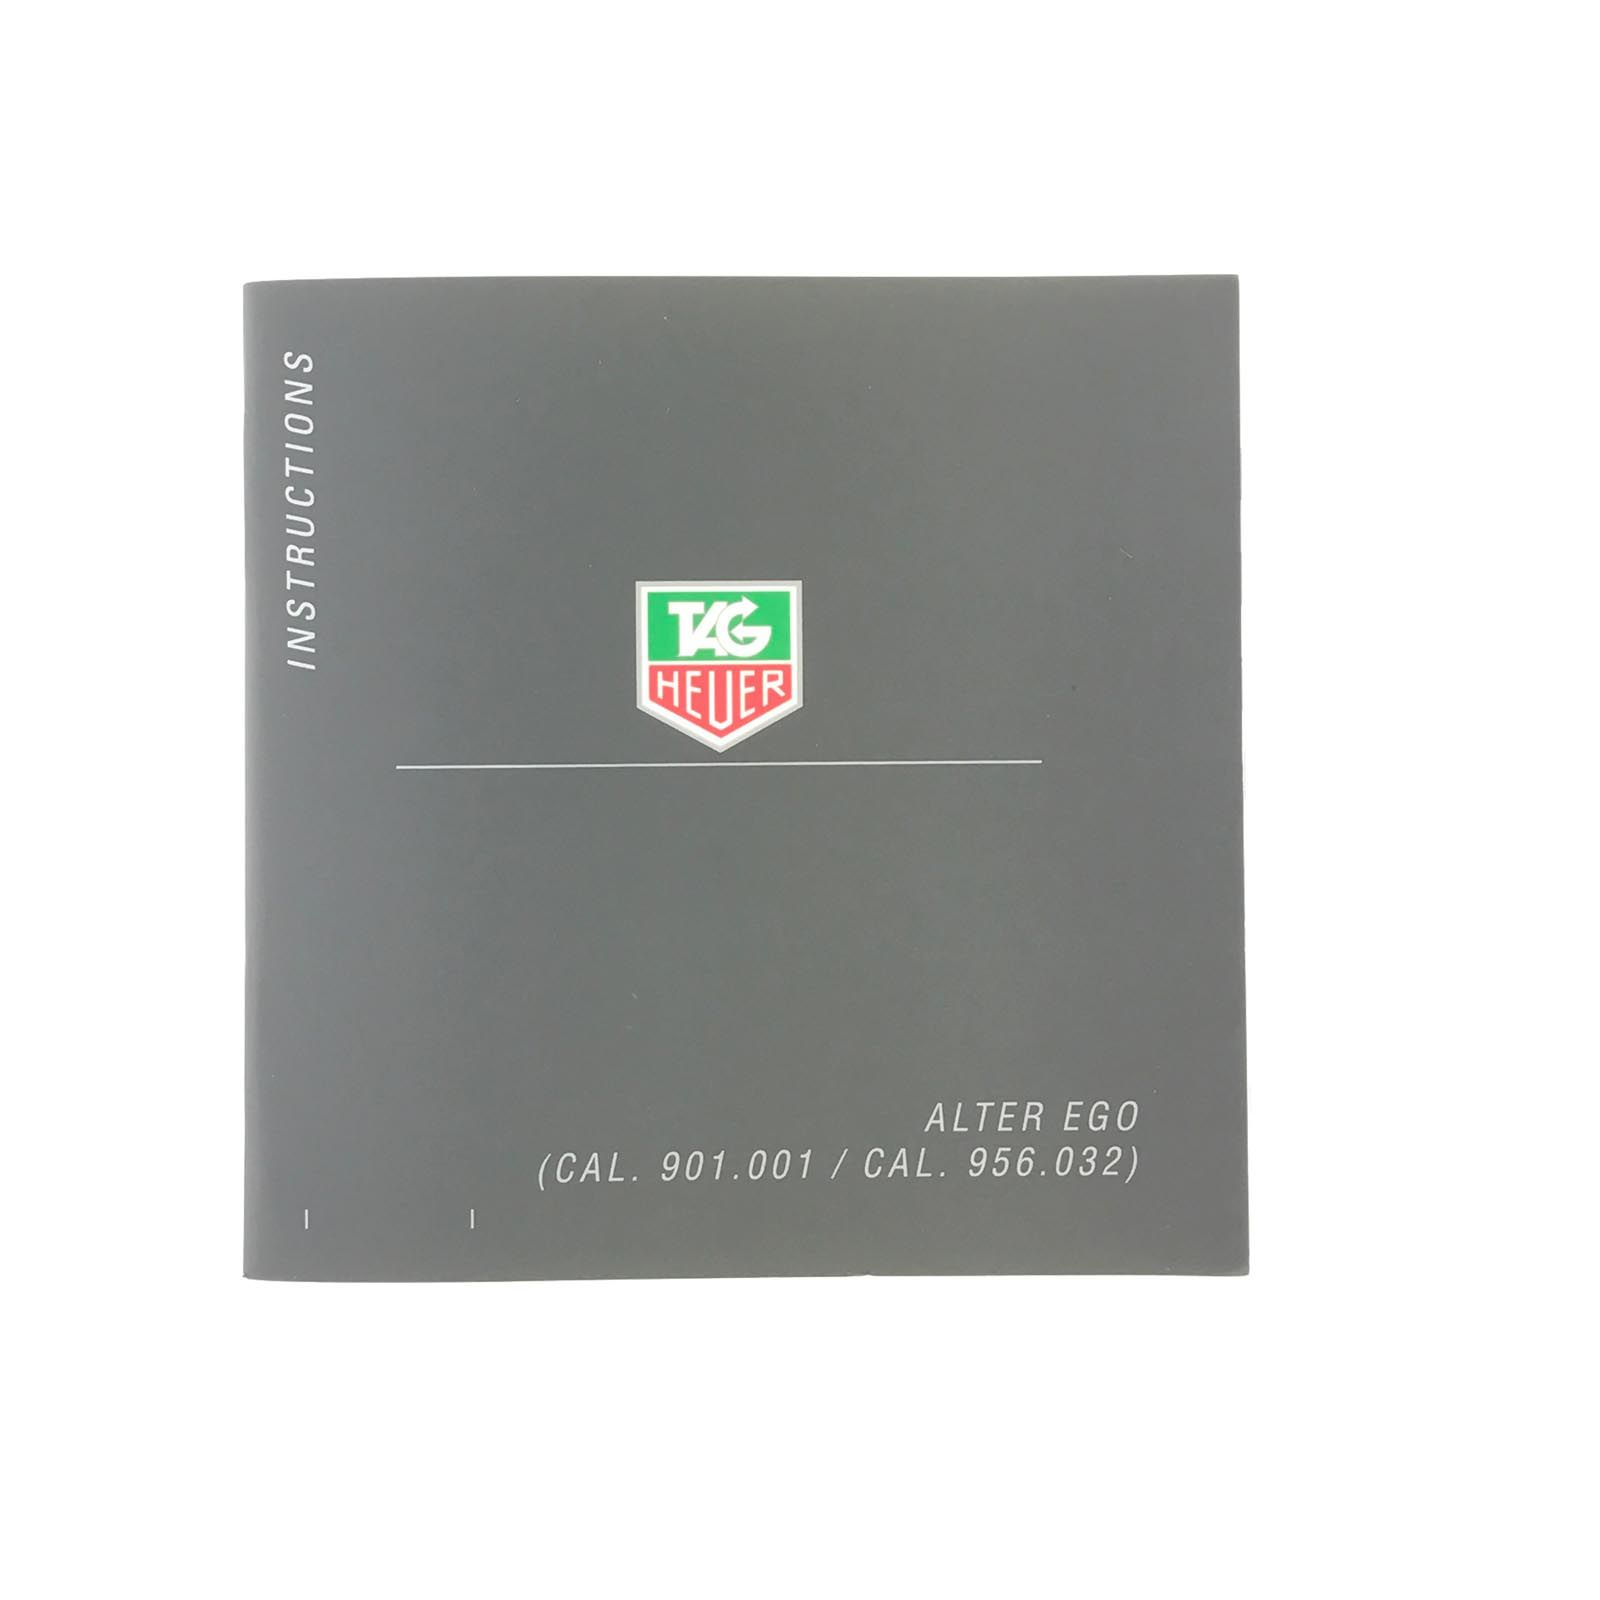 tag heuer alter ego calibre 907 001 956 032 instructions manual rh pinterest com tag heuer instruction manual calibre s tag heuer connected instruction manual